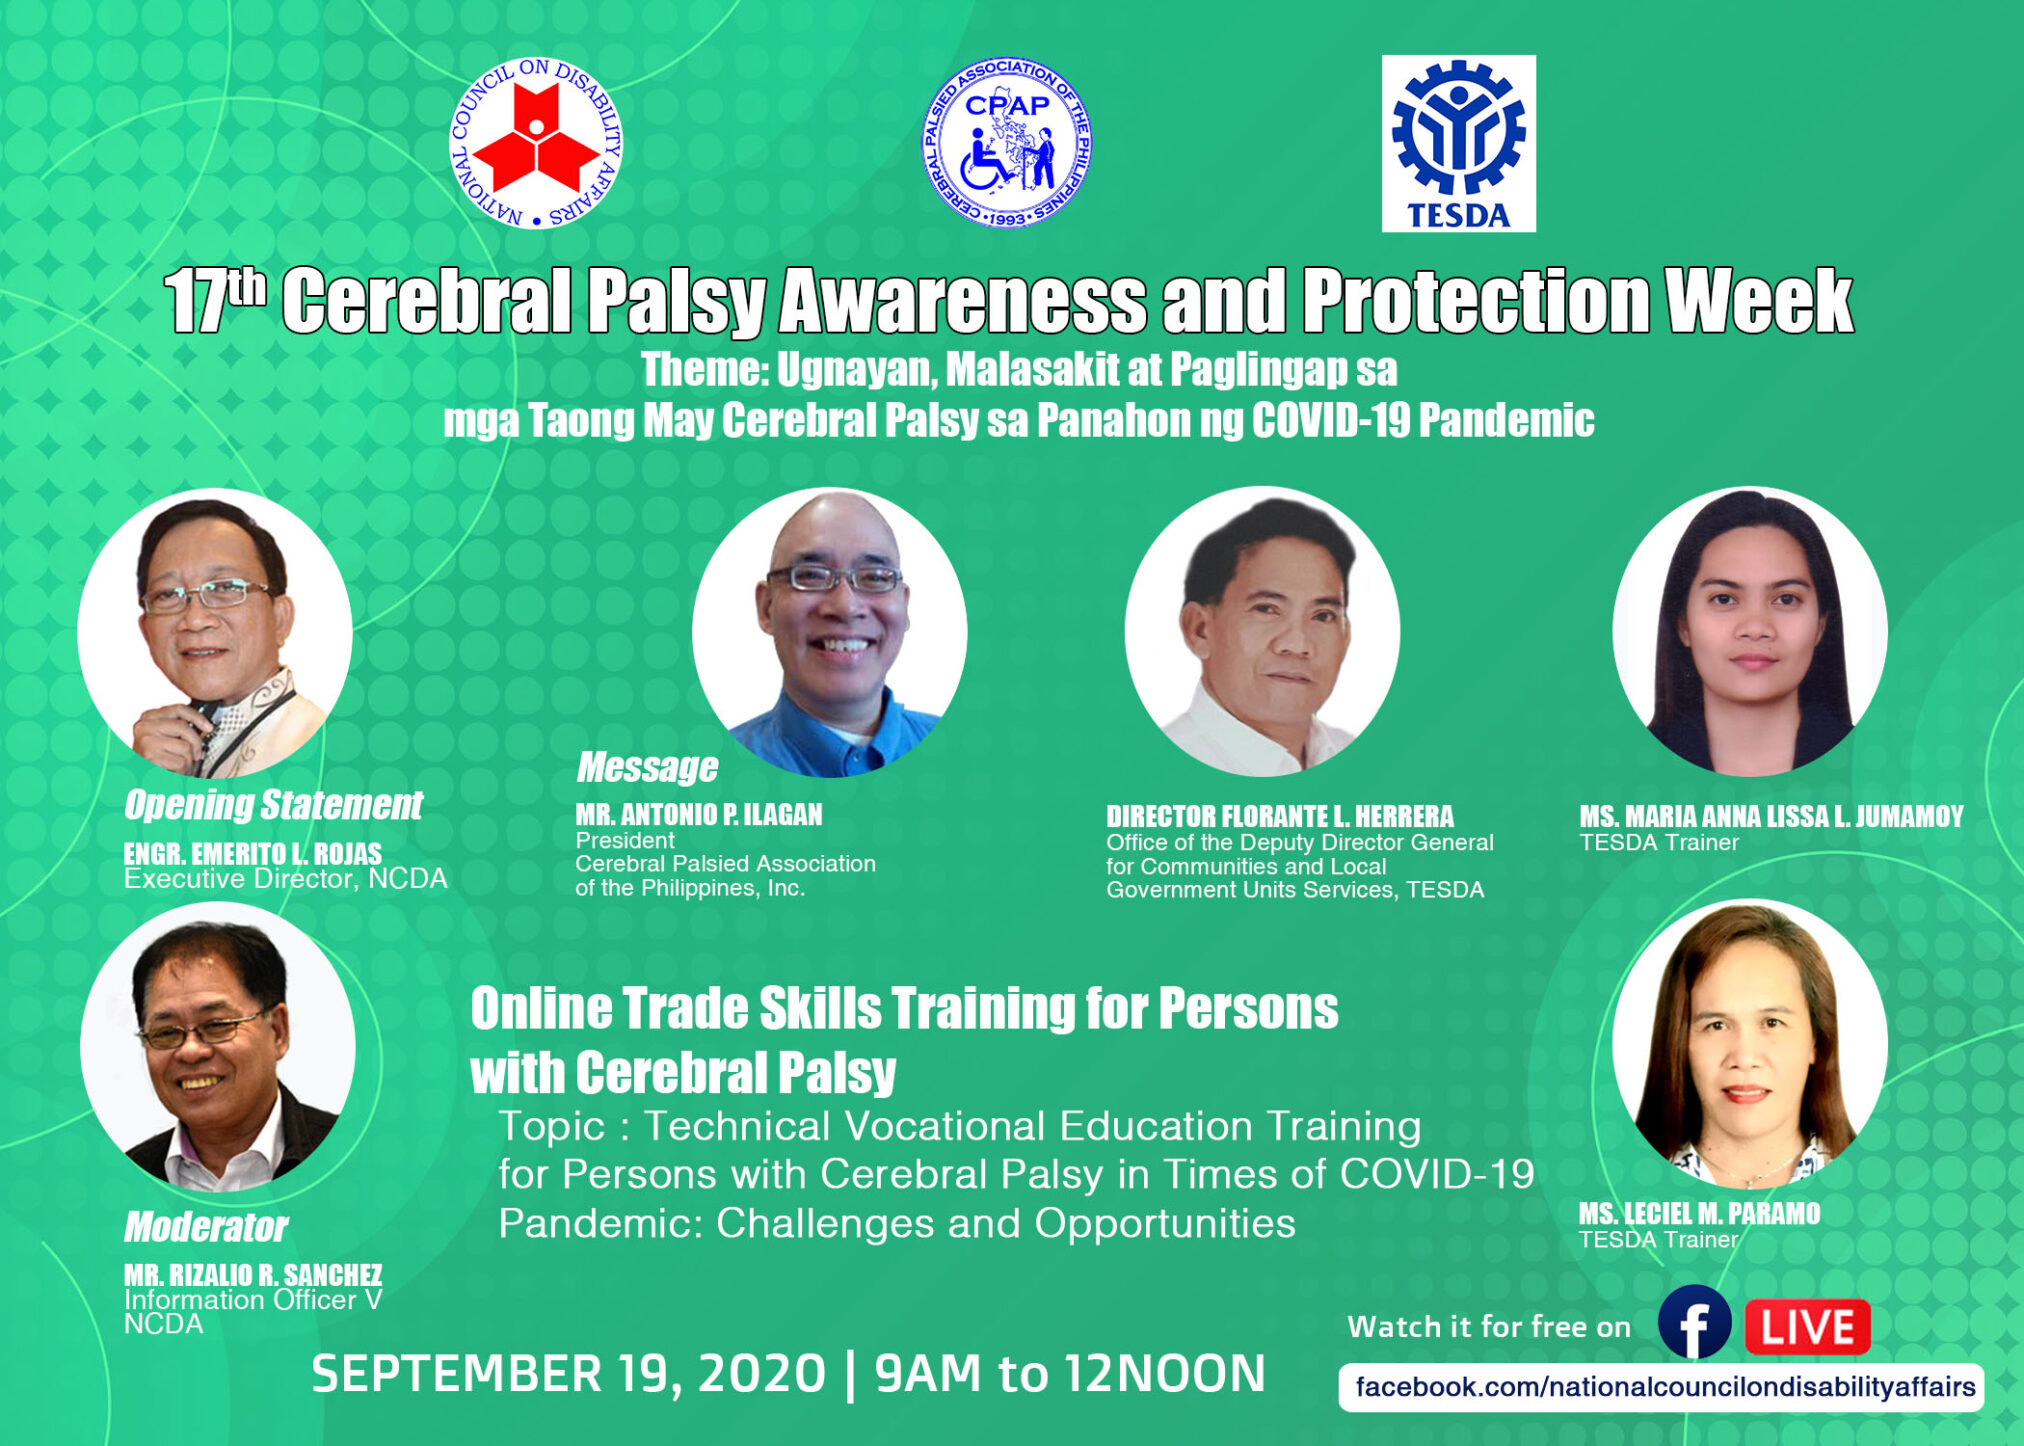 Online Trade Skills Training for Persons with Cerebral Palsy